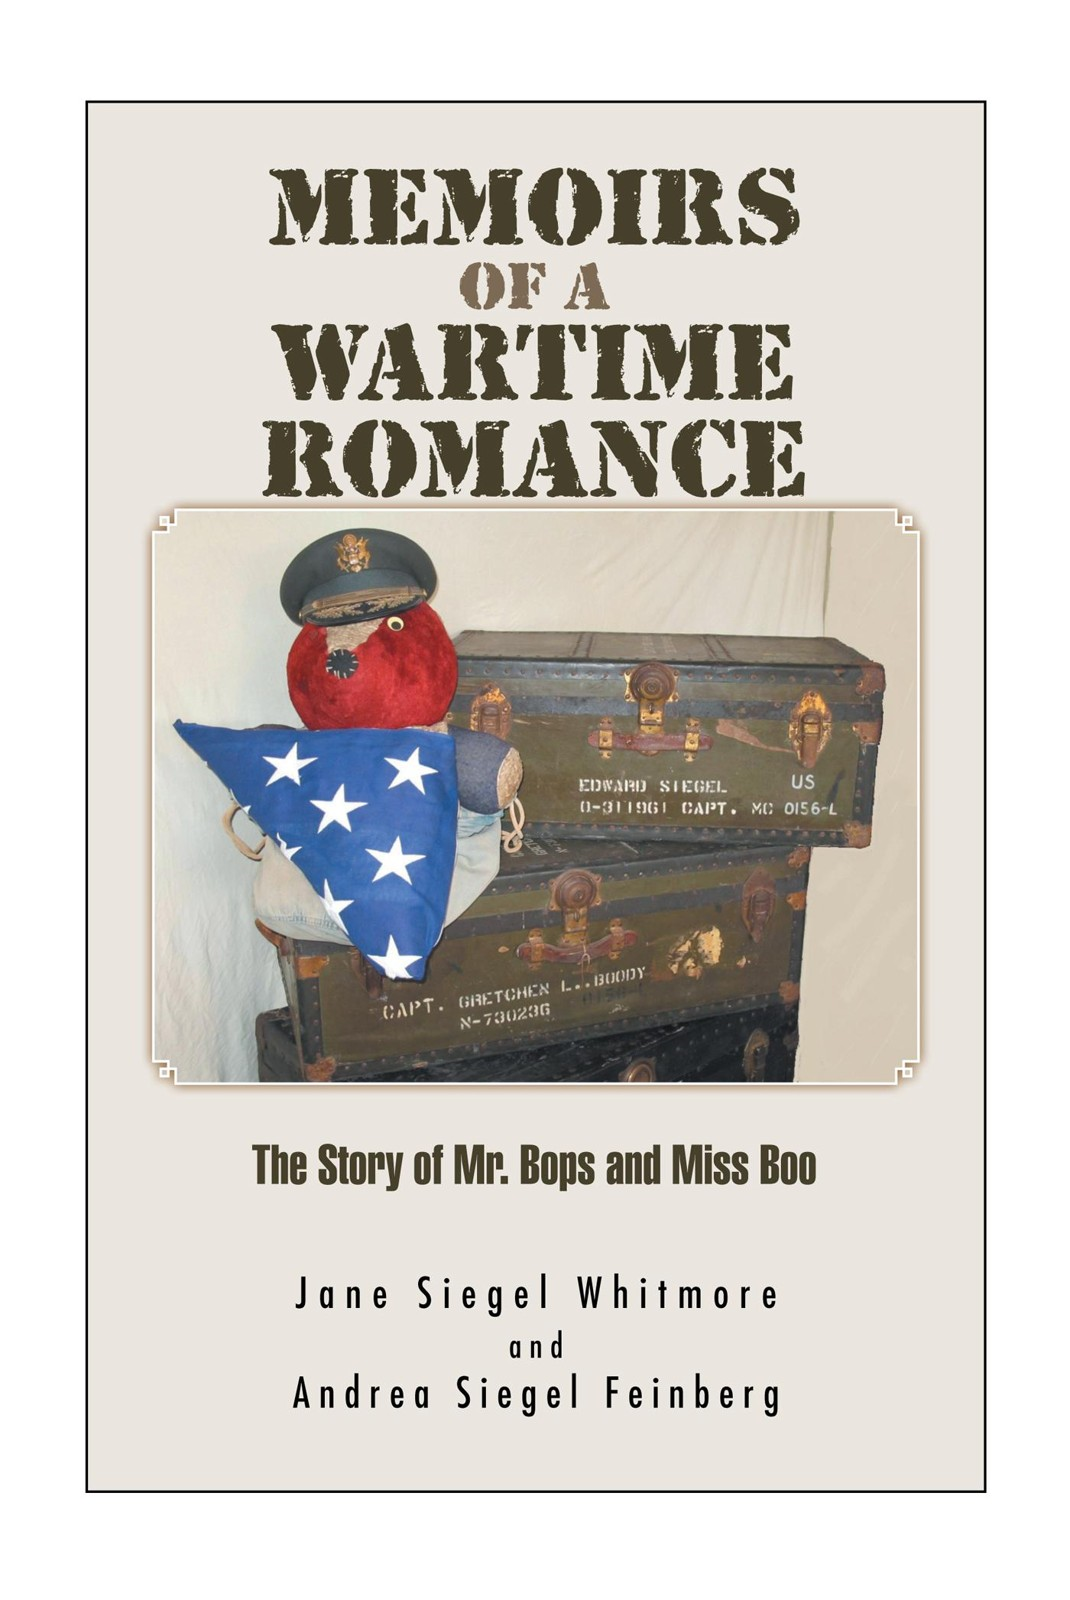 MEMOIRS OF A WARTIME ROMANCE